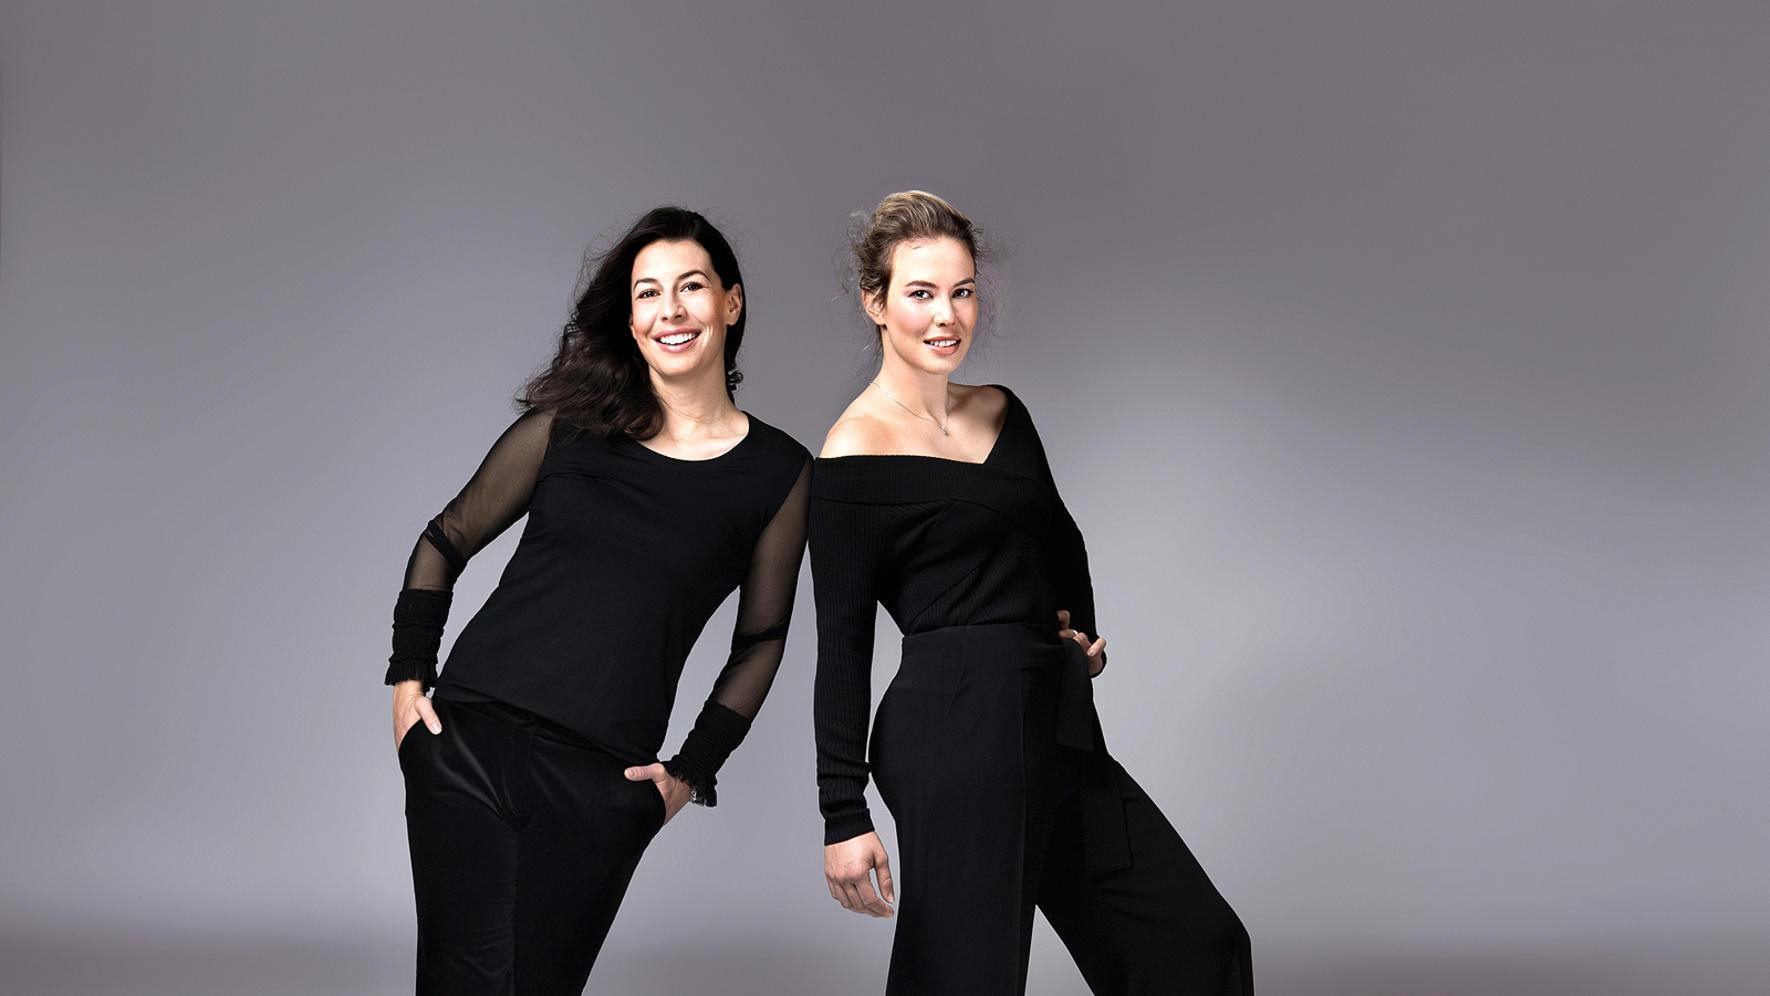 Dominique und Michelle Gisin